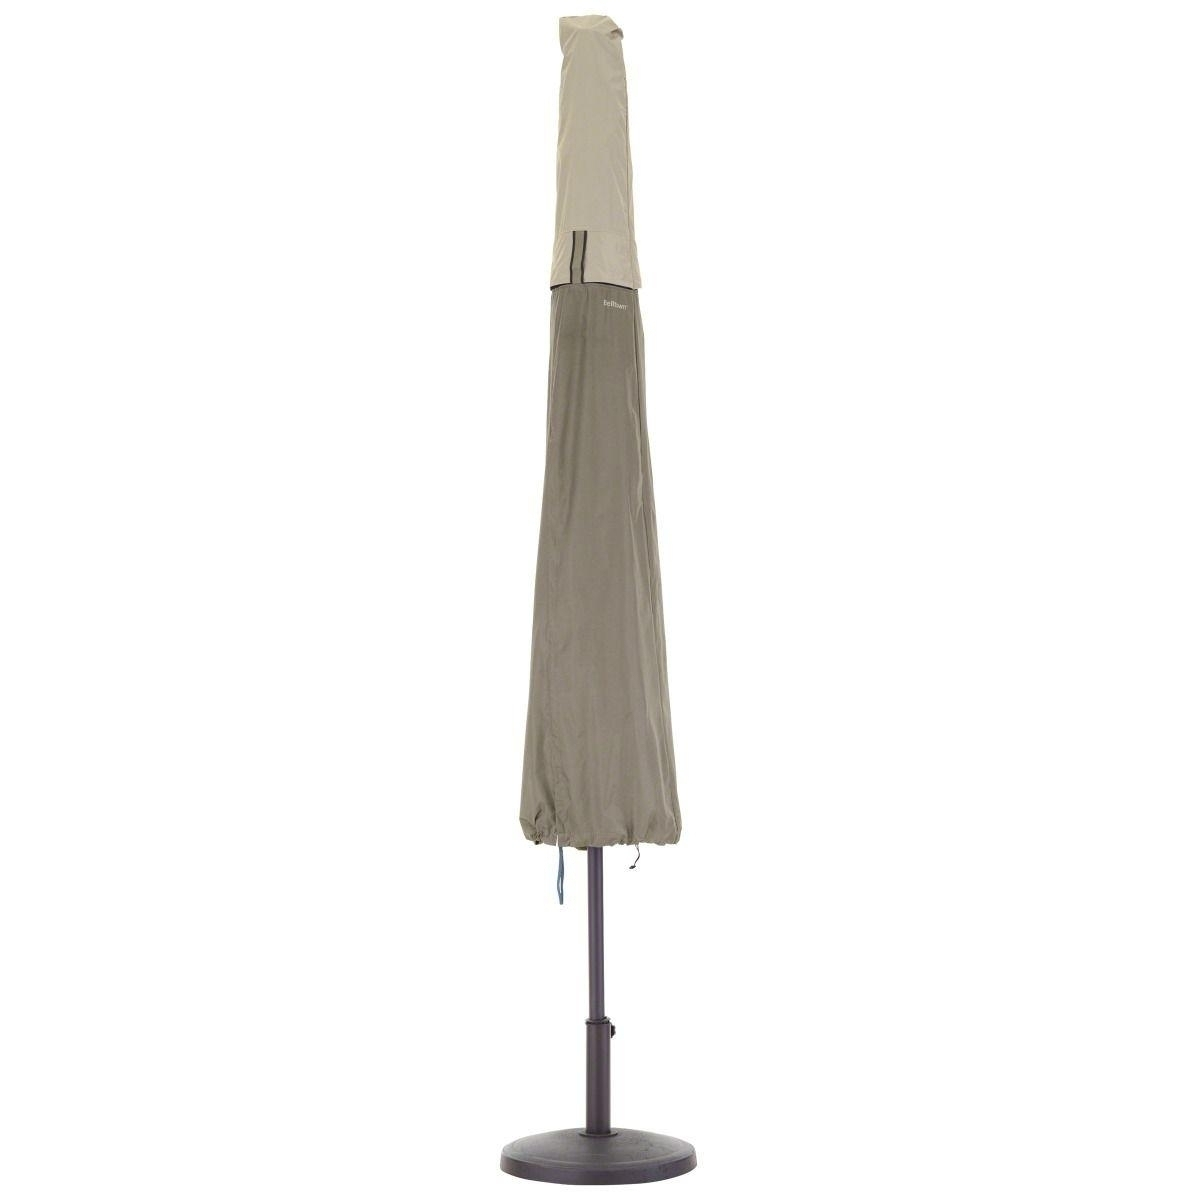 Belltown Storagesaver Patio Umbrella Cover - Grey - 55-272-011001-00 - Furniture & Office Benches & Picnic Tables Umbrellas & Bases 55-272-011001-00